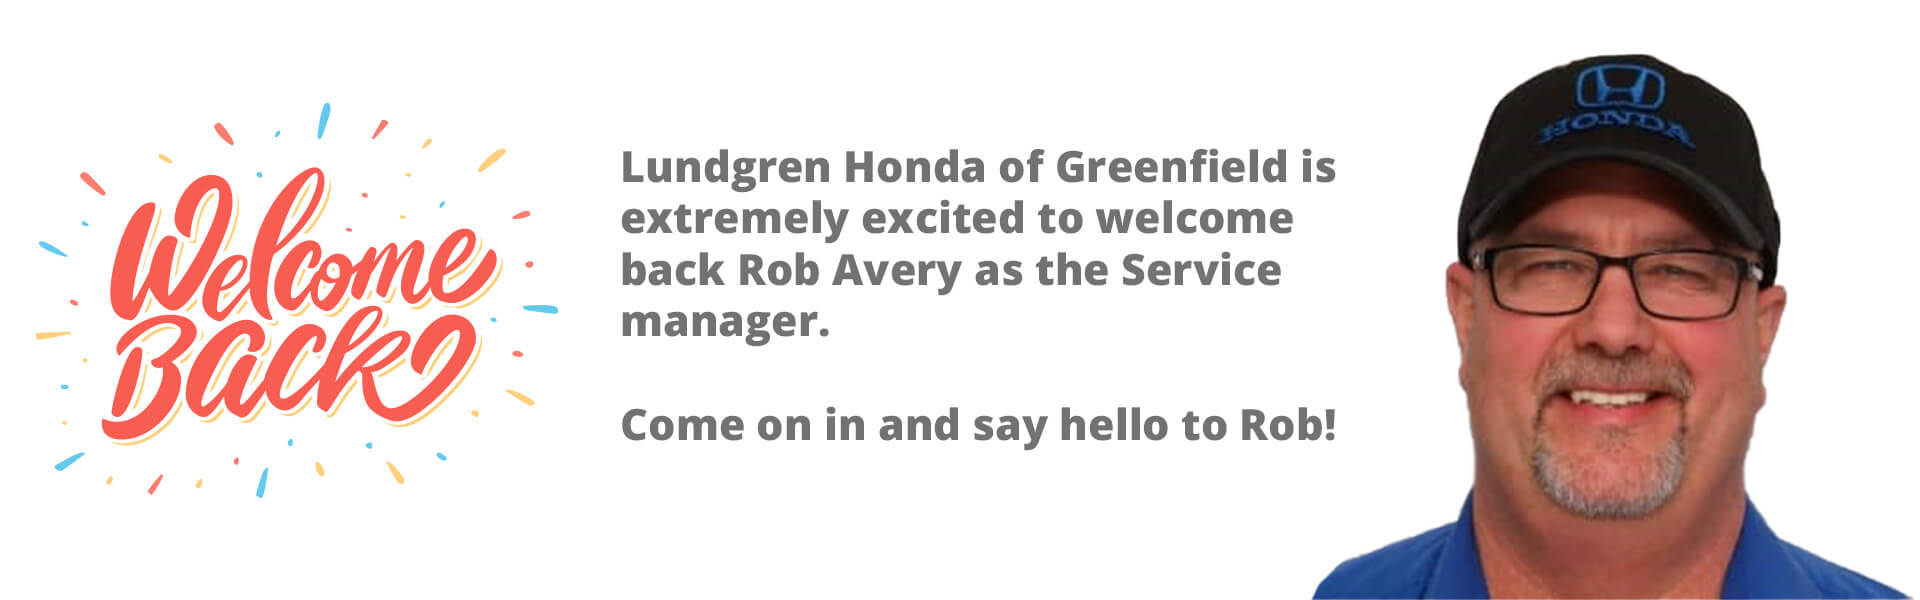 Welcome Back! Lundgren Honda of Greenfield is extremely excited to welcome back Rob Avery as the Service manager. Come on in and say hello to Rob!